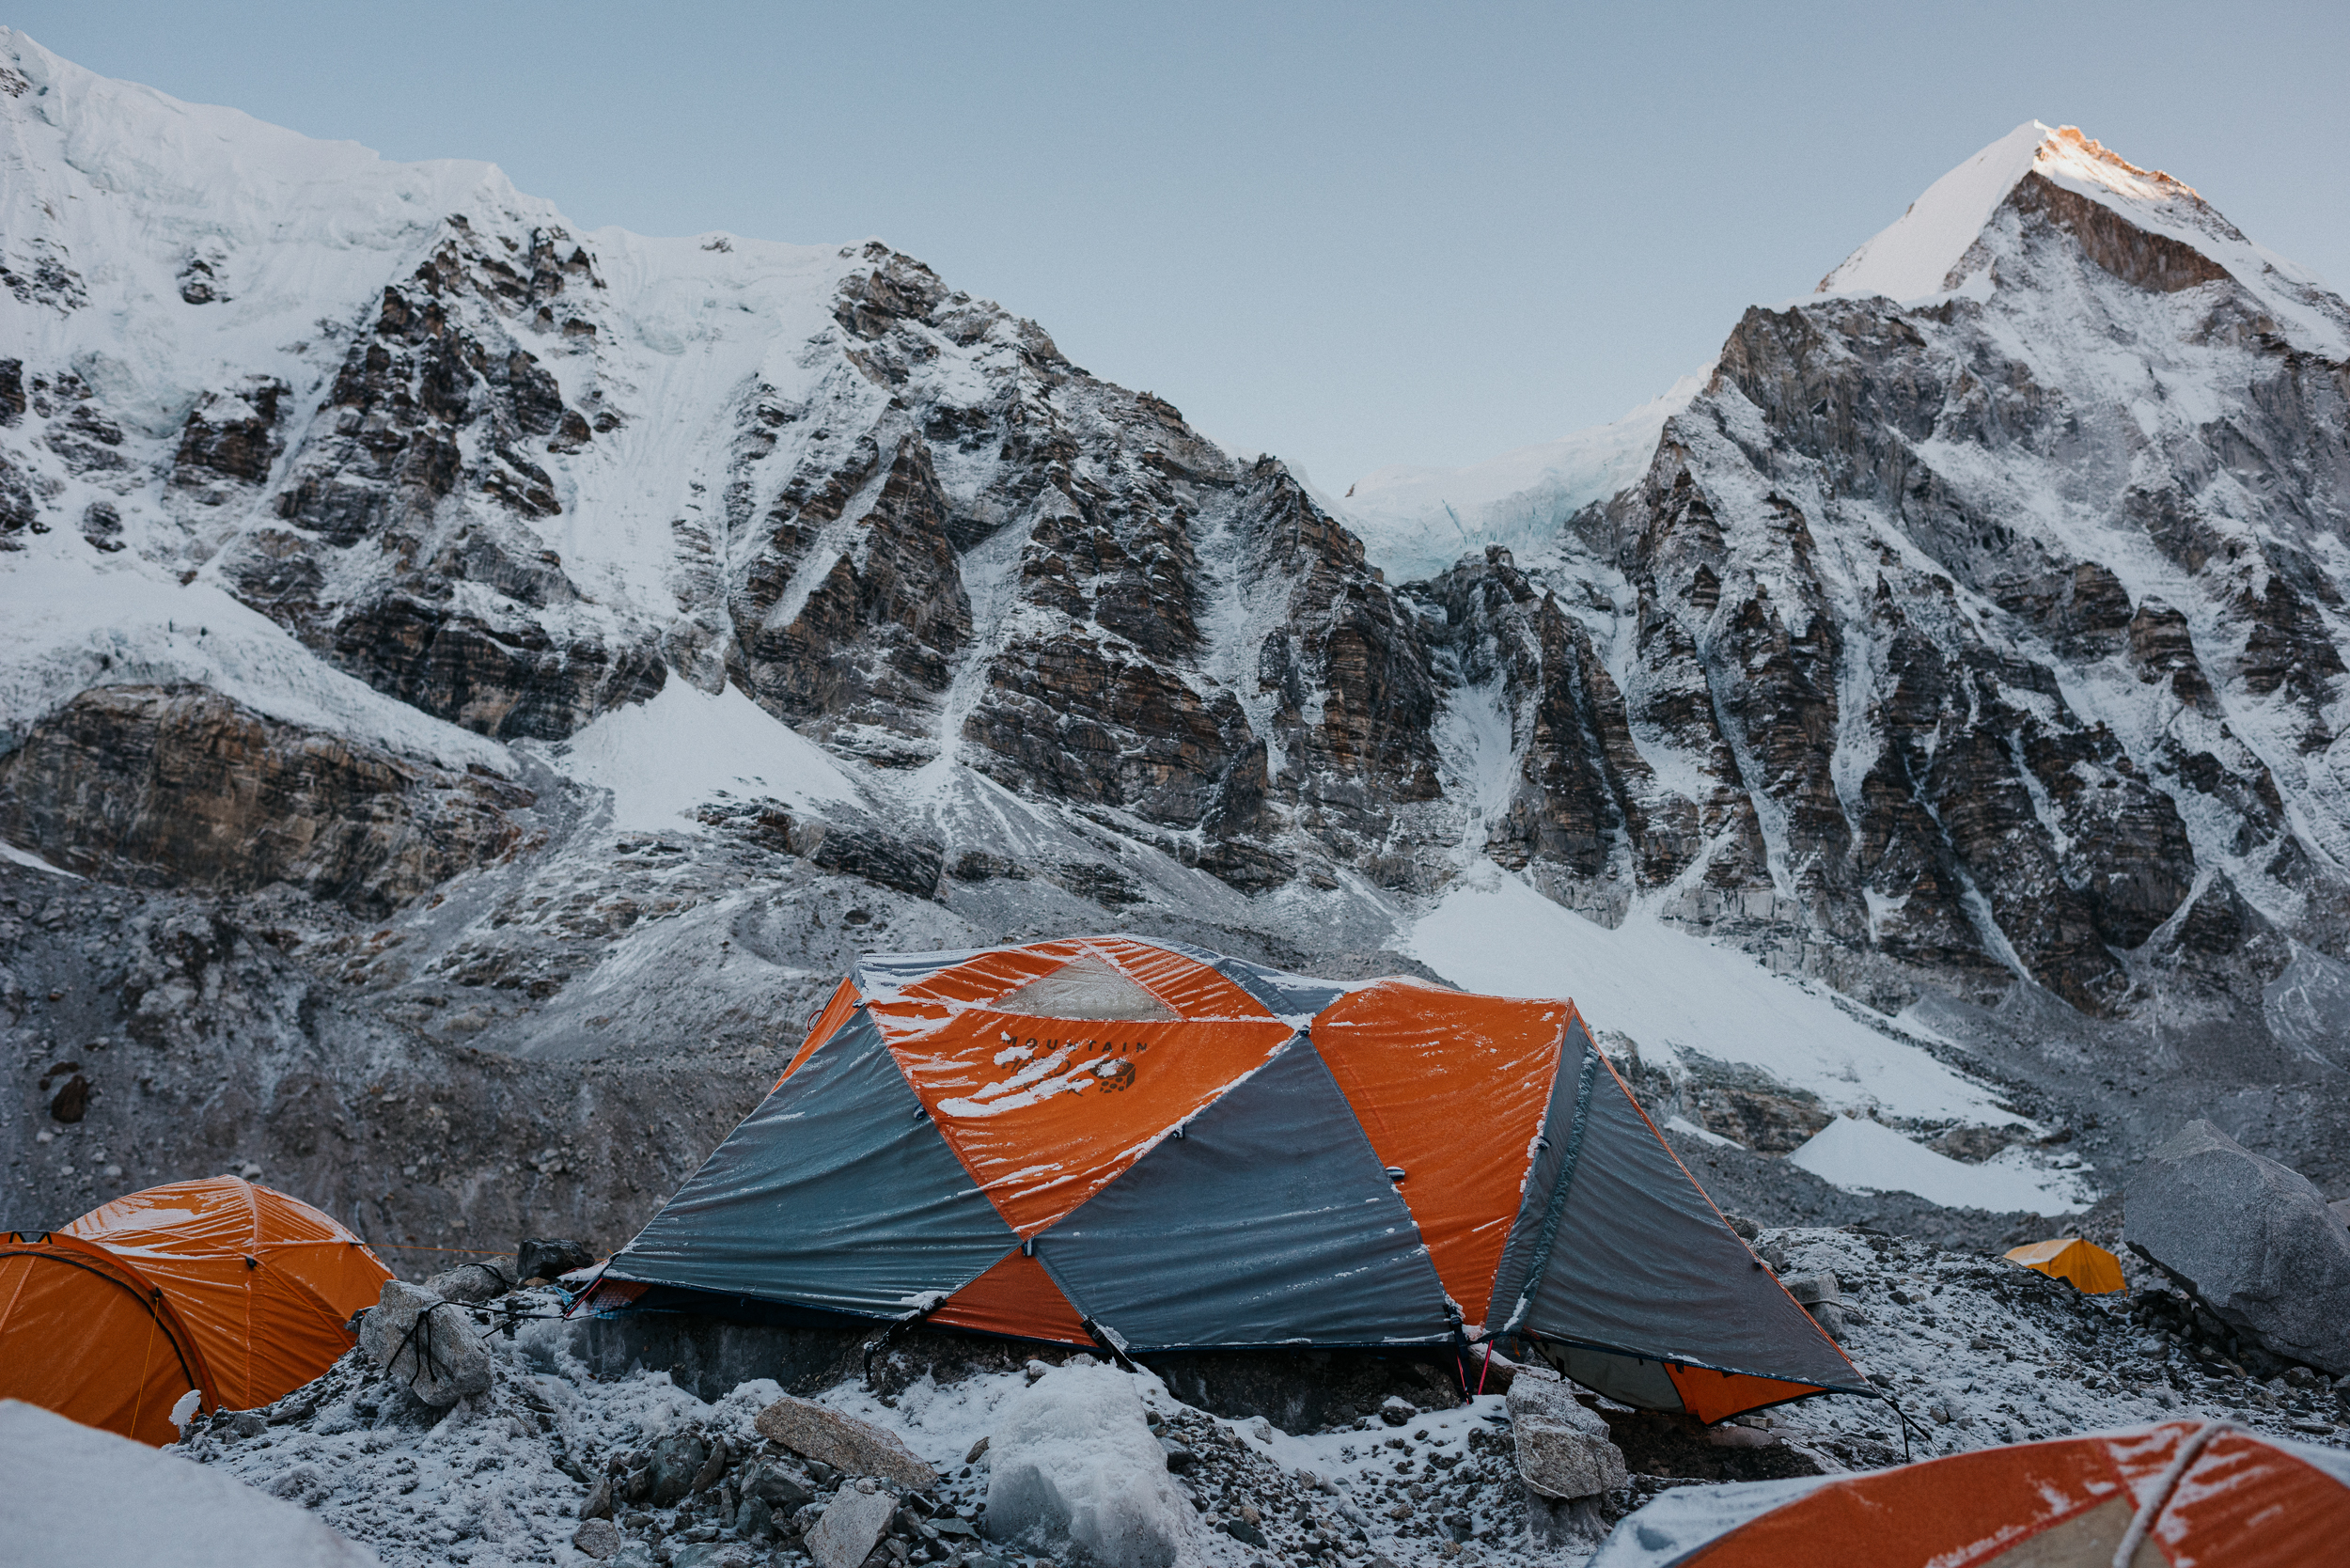 Nepal_EverestBaseCamp_2019_TaraShupe_Photography_DSC_4351.jpg